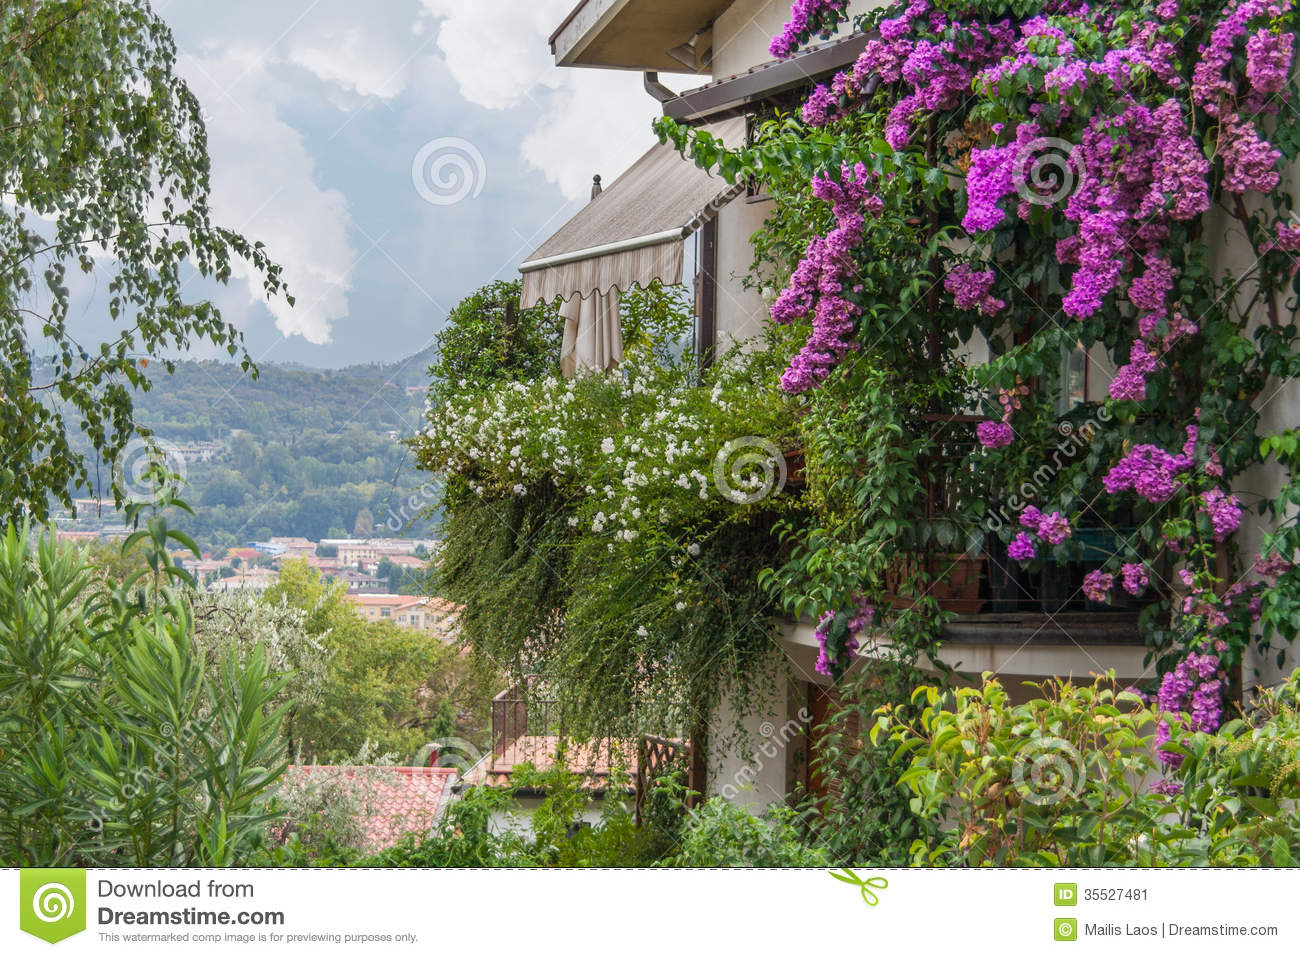 Download Italian House With Bougainvilleas Stock Image - Image of italy, village: 35527481